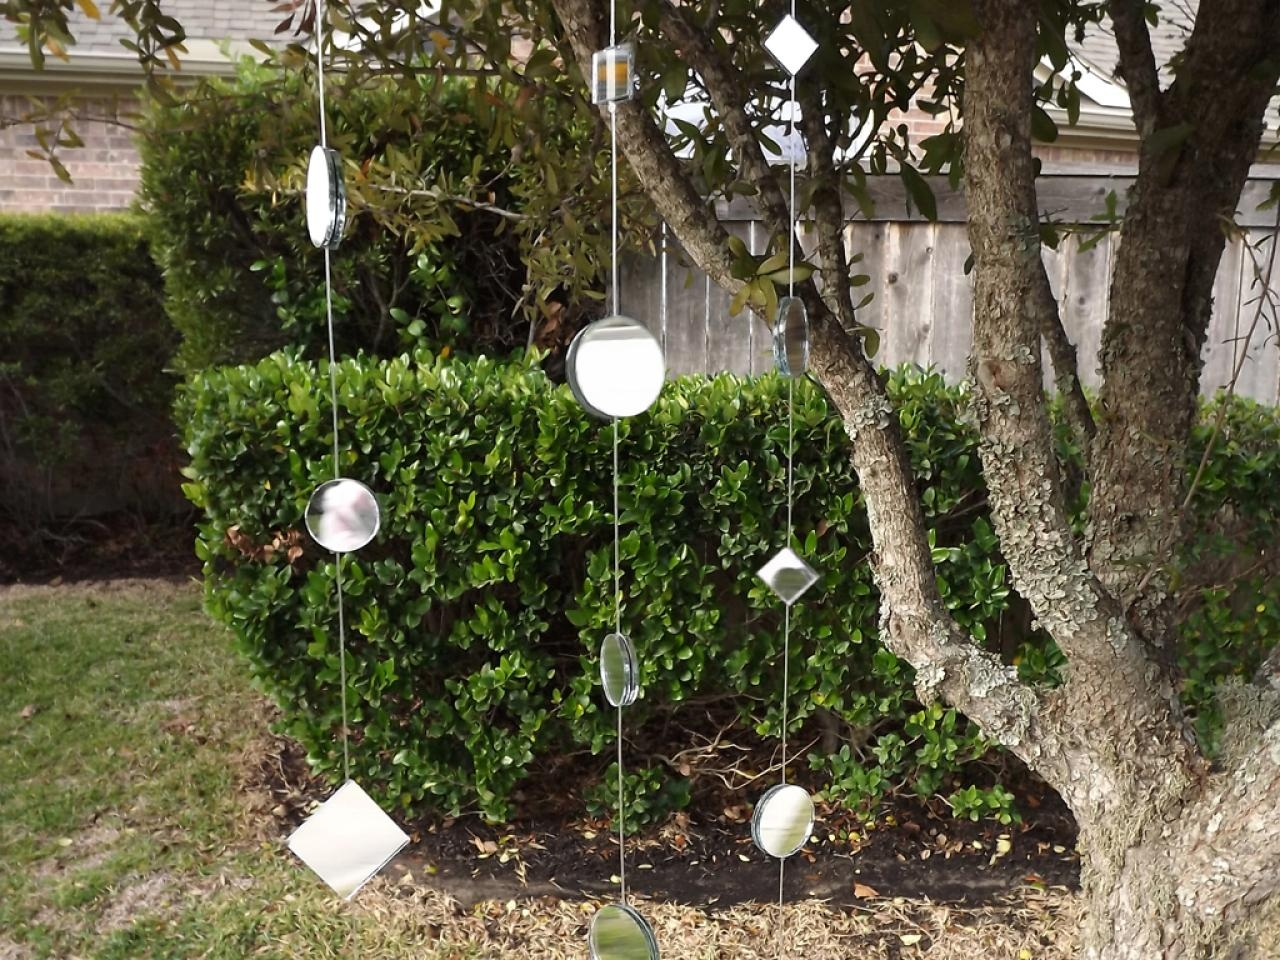 How To Make A Mirror Garland For The Garden Hgtv Regarding Outside Garden Mirrors (View 7 of 14)